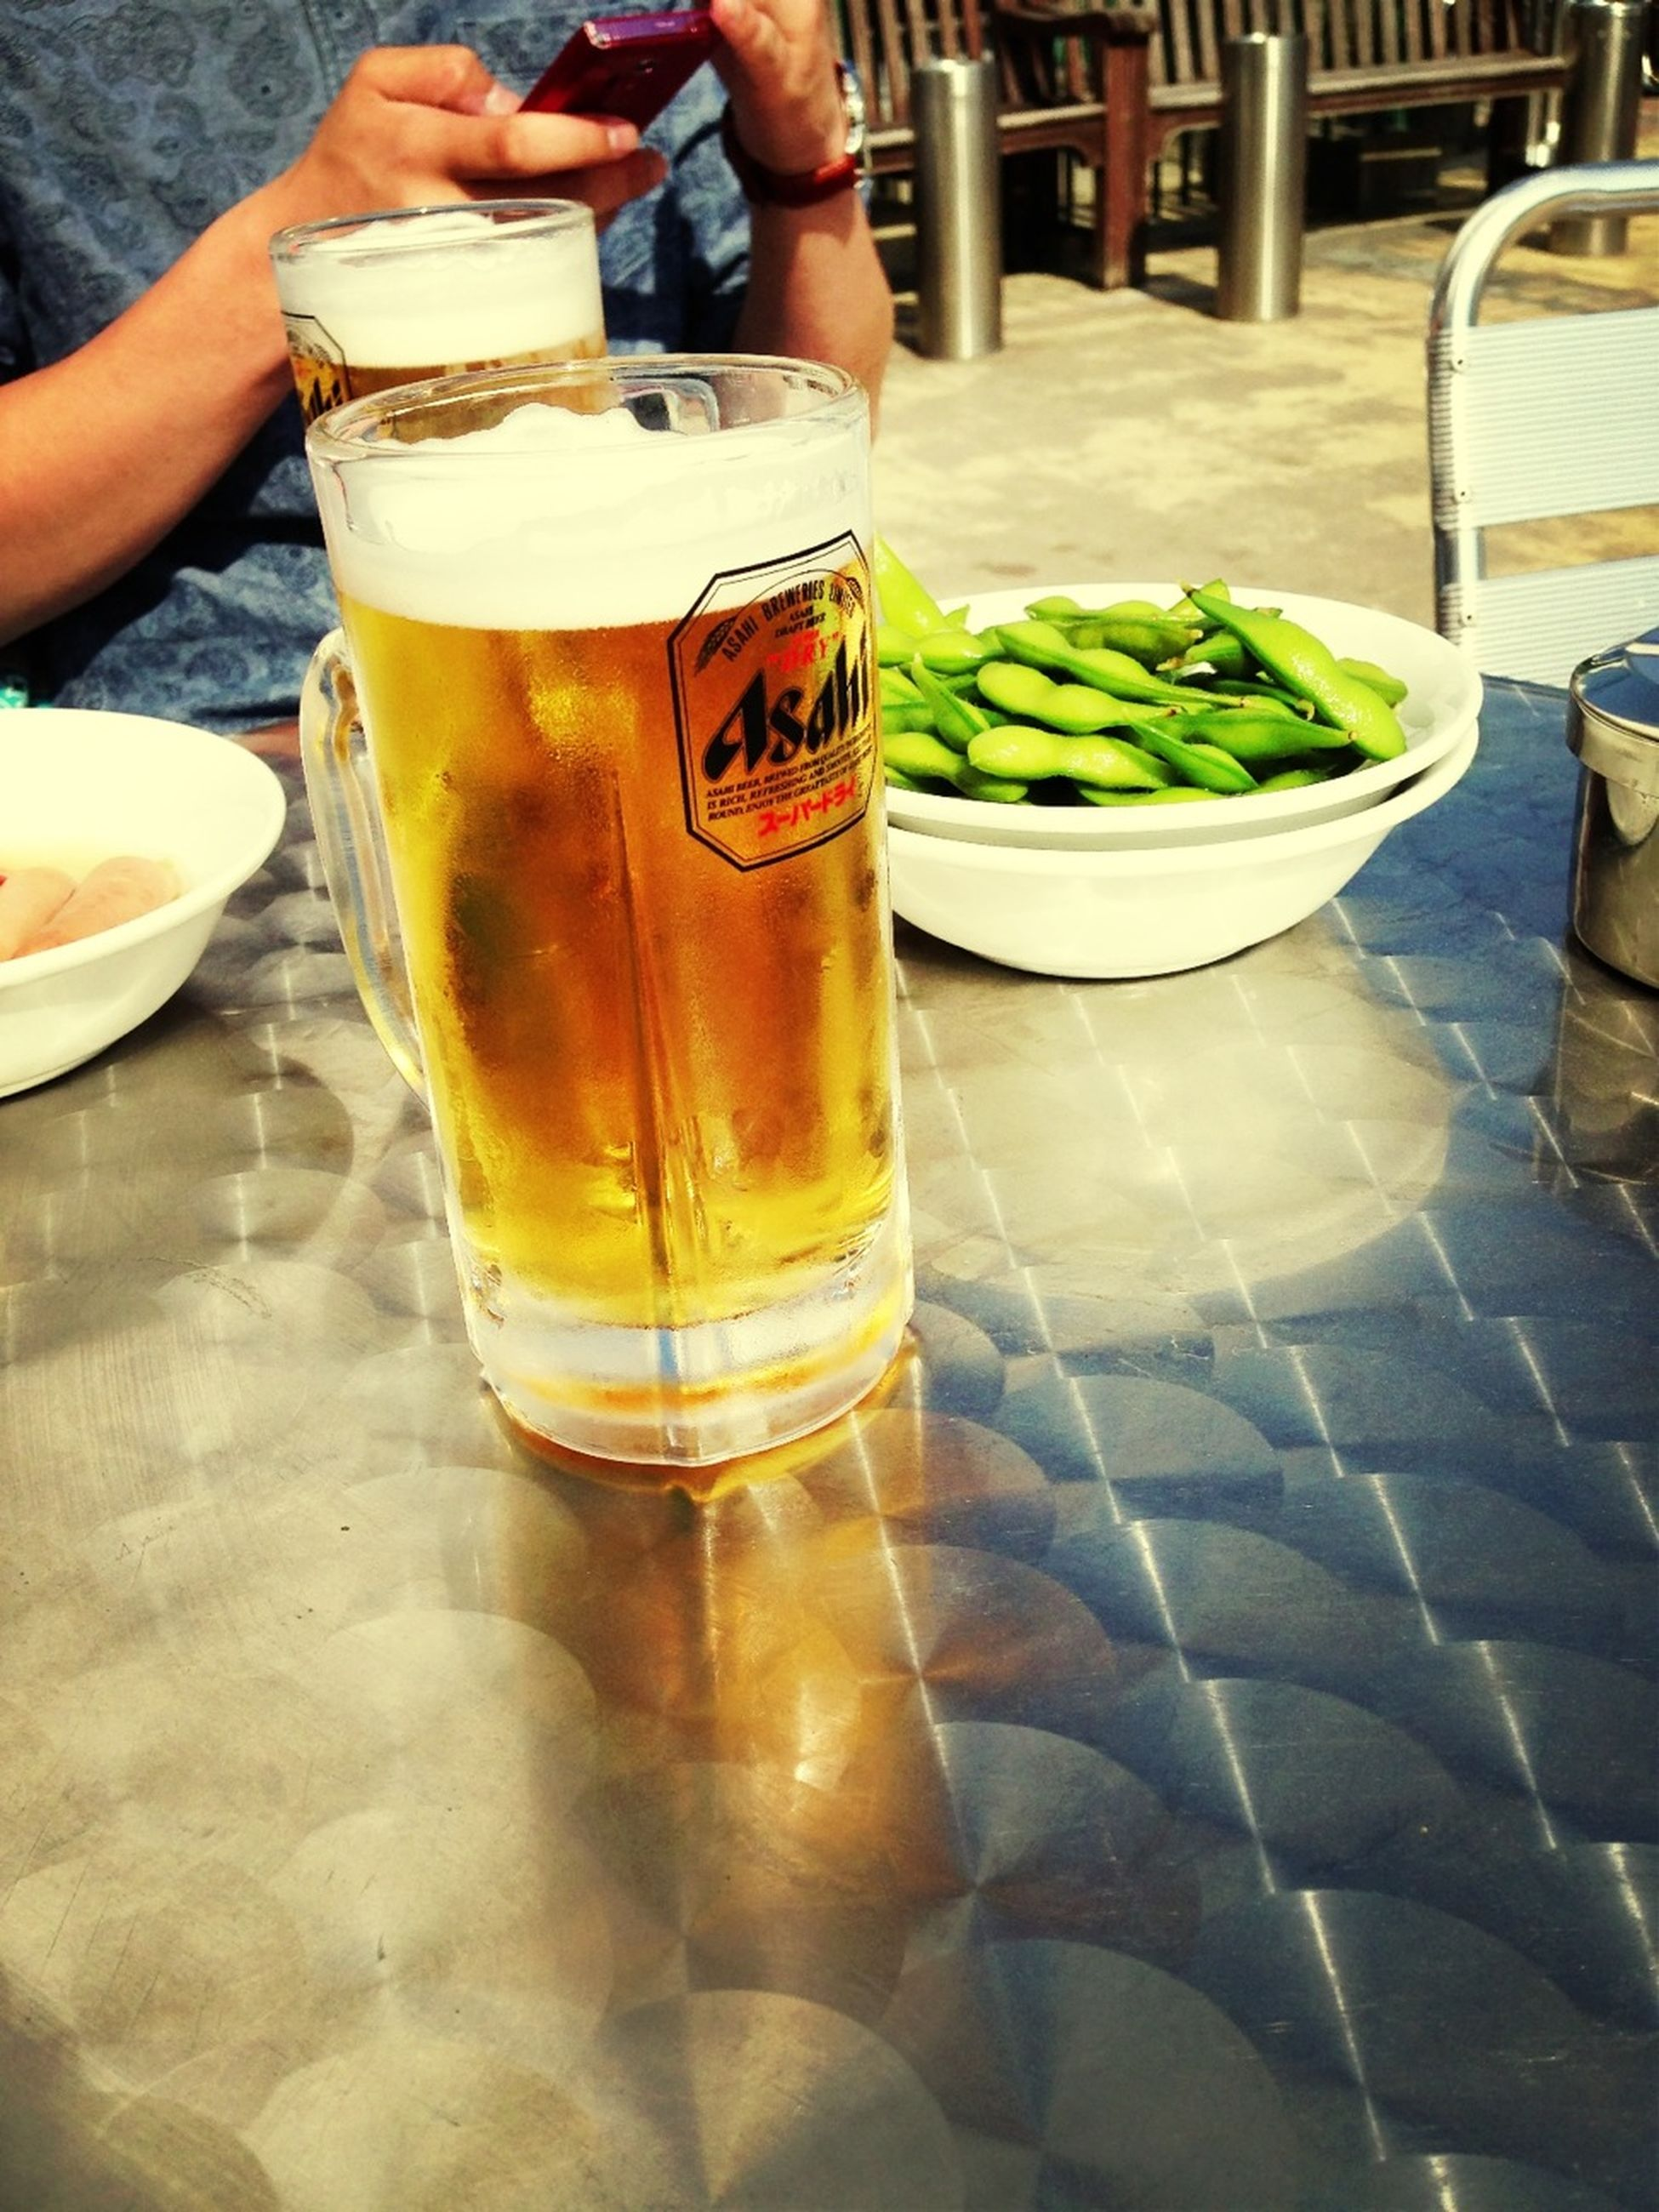 drink, food and drink, refreshment, drinking glass, freshness, table, alcohol, restaurant, frothy drink, indoors, lifestyles, juice, healthy eating, incidental people, drinking straw, close-up, coffee - drink, beer glass